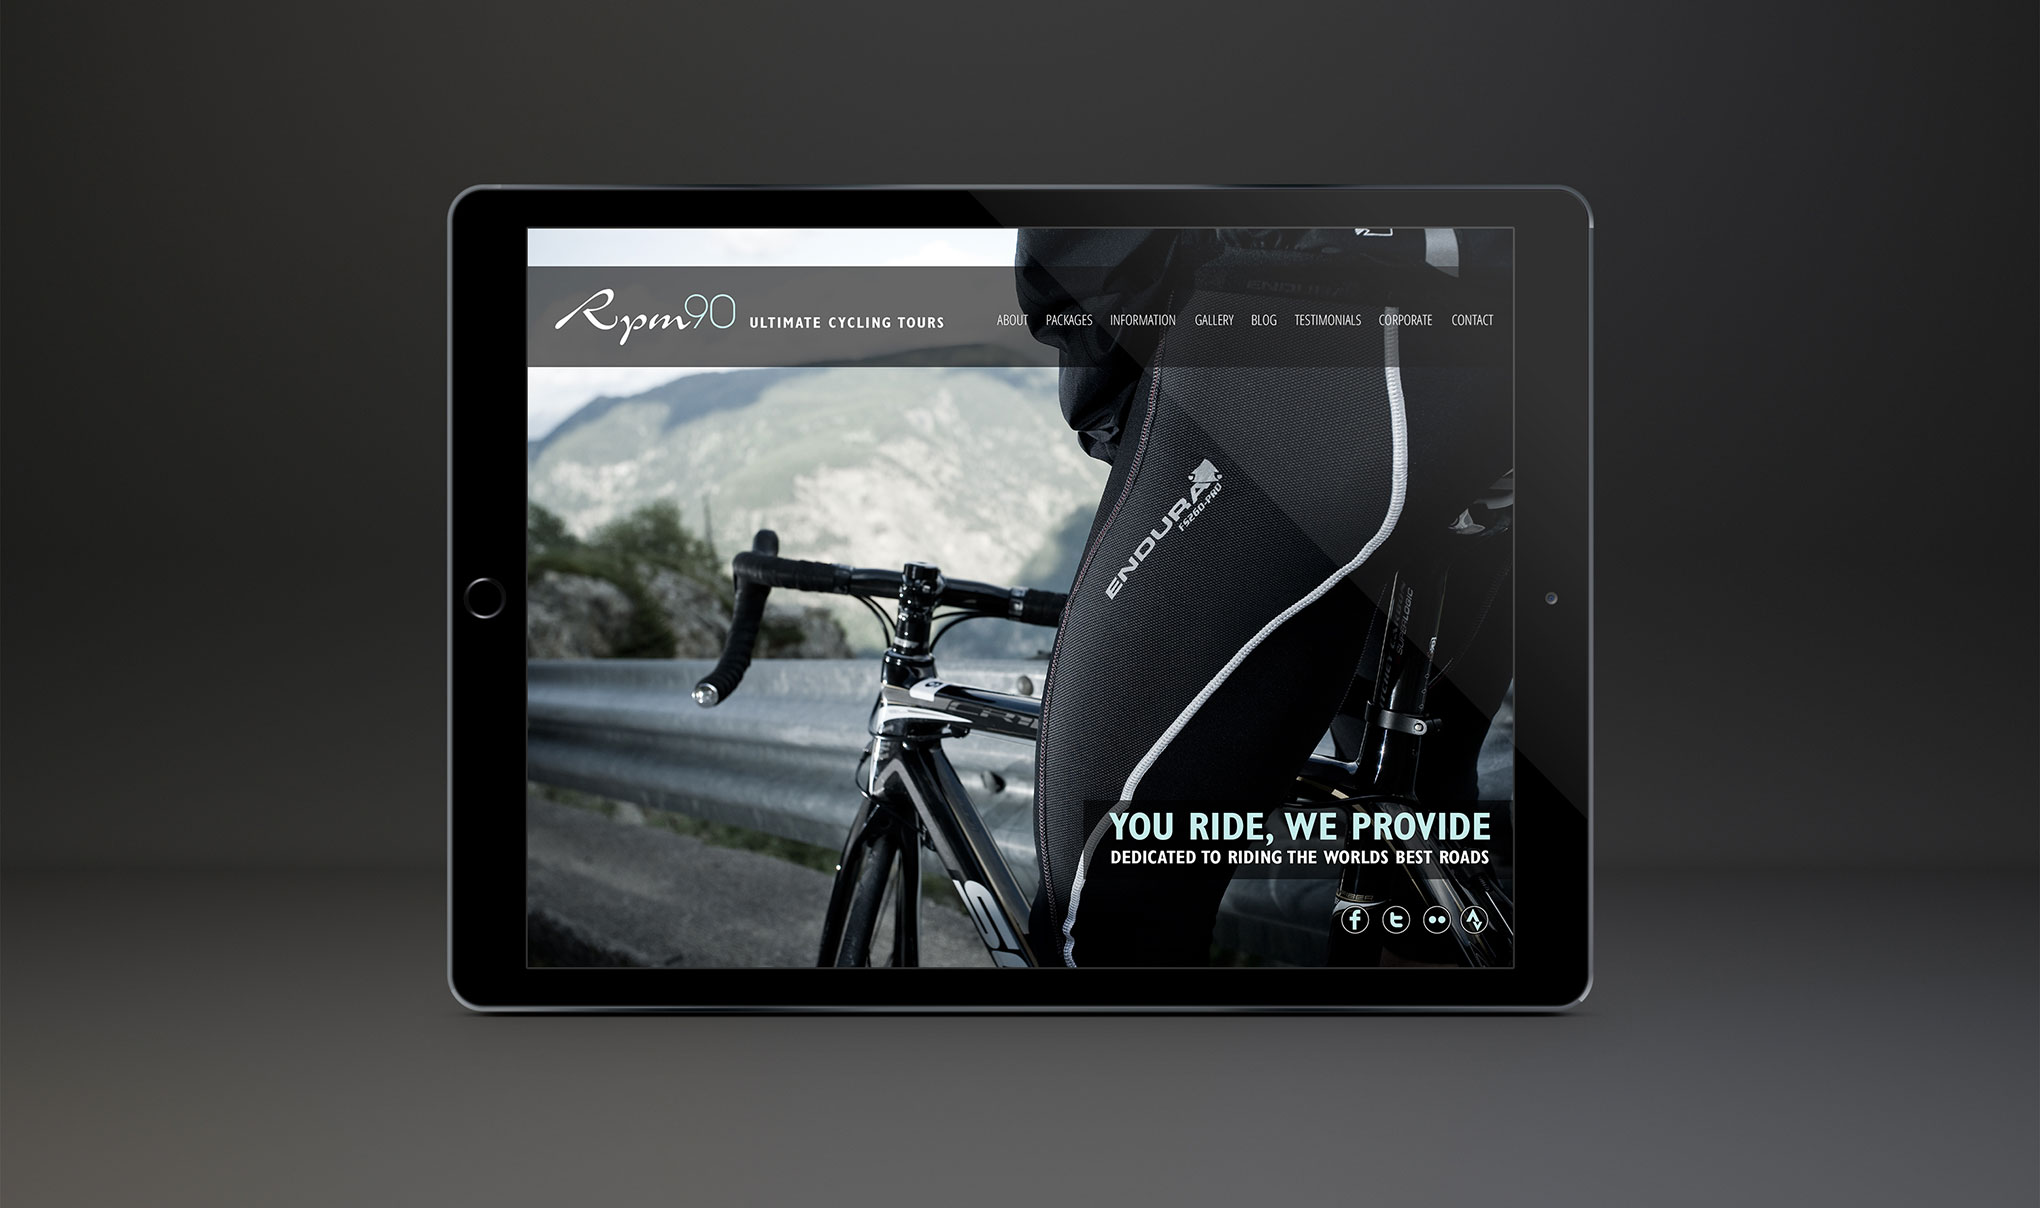 Web Design for RPM90 cycling holidays - Home page.